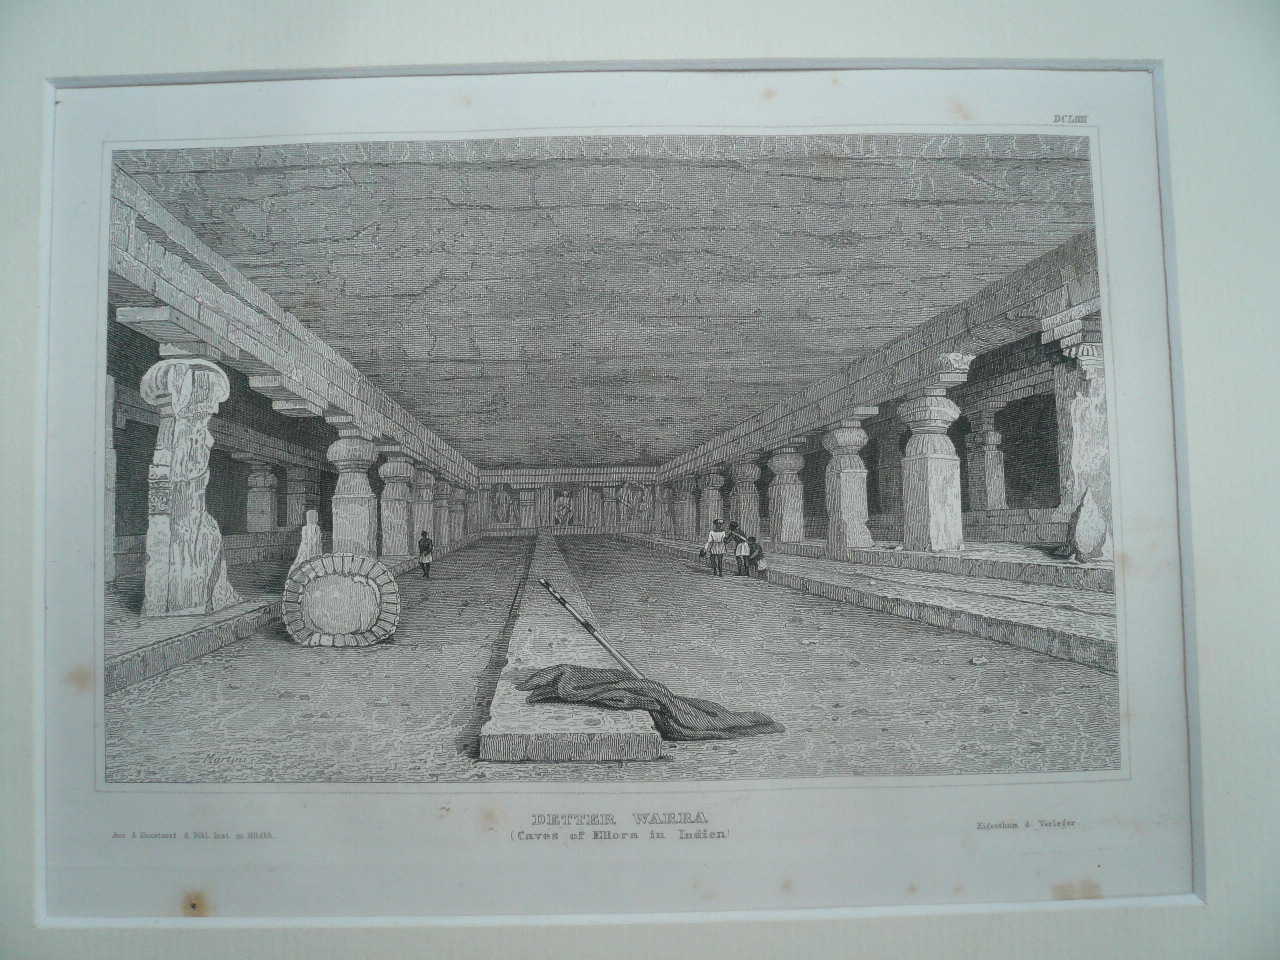 Caves of Ellora India, anno 1850, hinter Passepartout    -    30